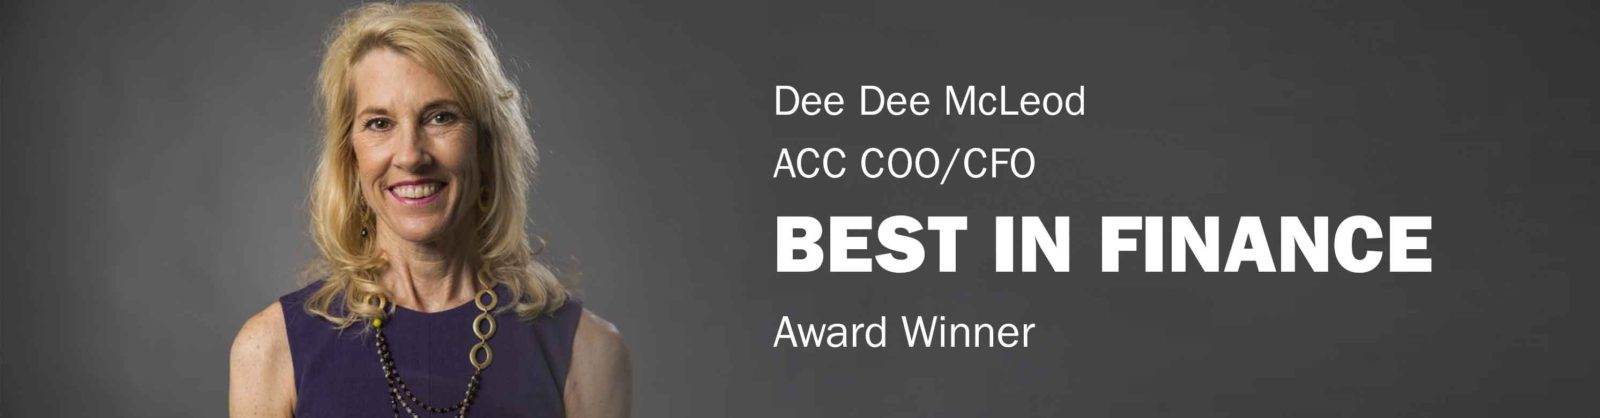 Best in Finance Award Winner Dee Dee McLeod Banner